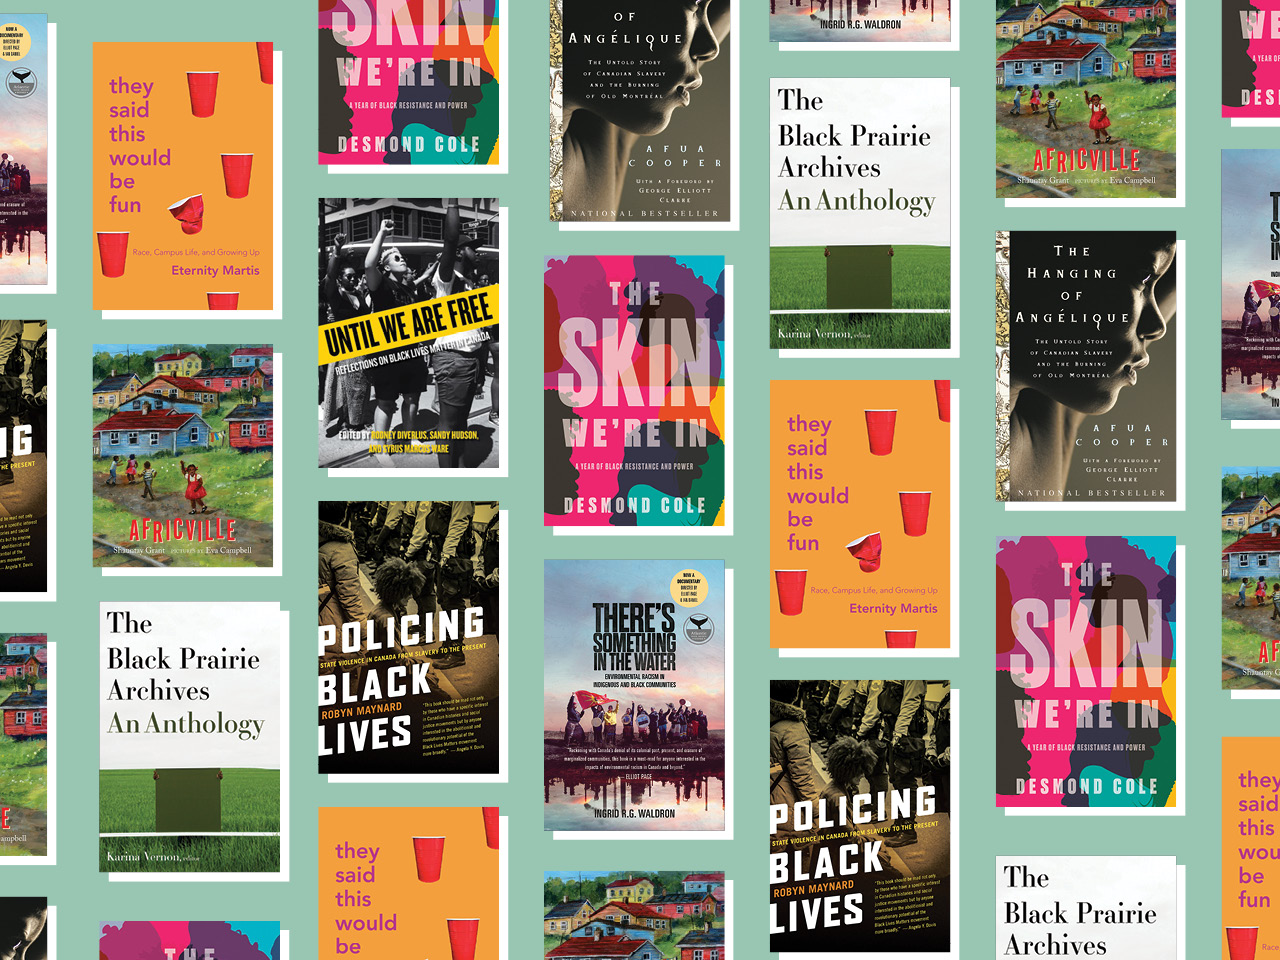 A photo collage of the covers of the listed books.